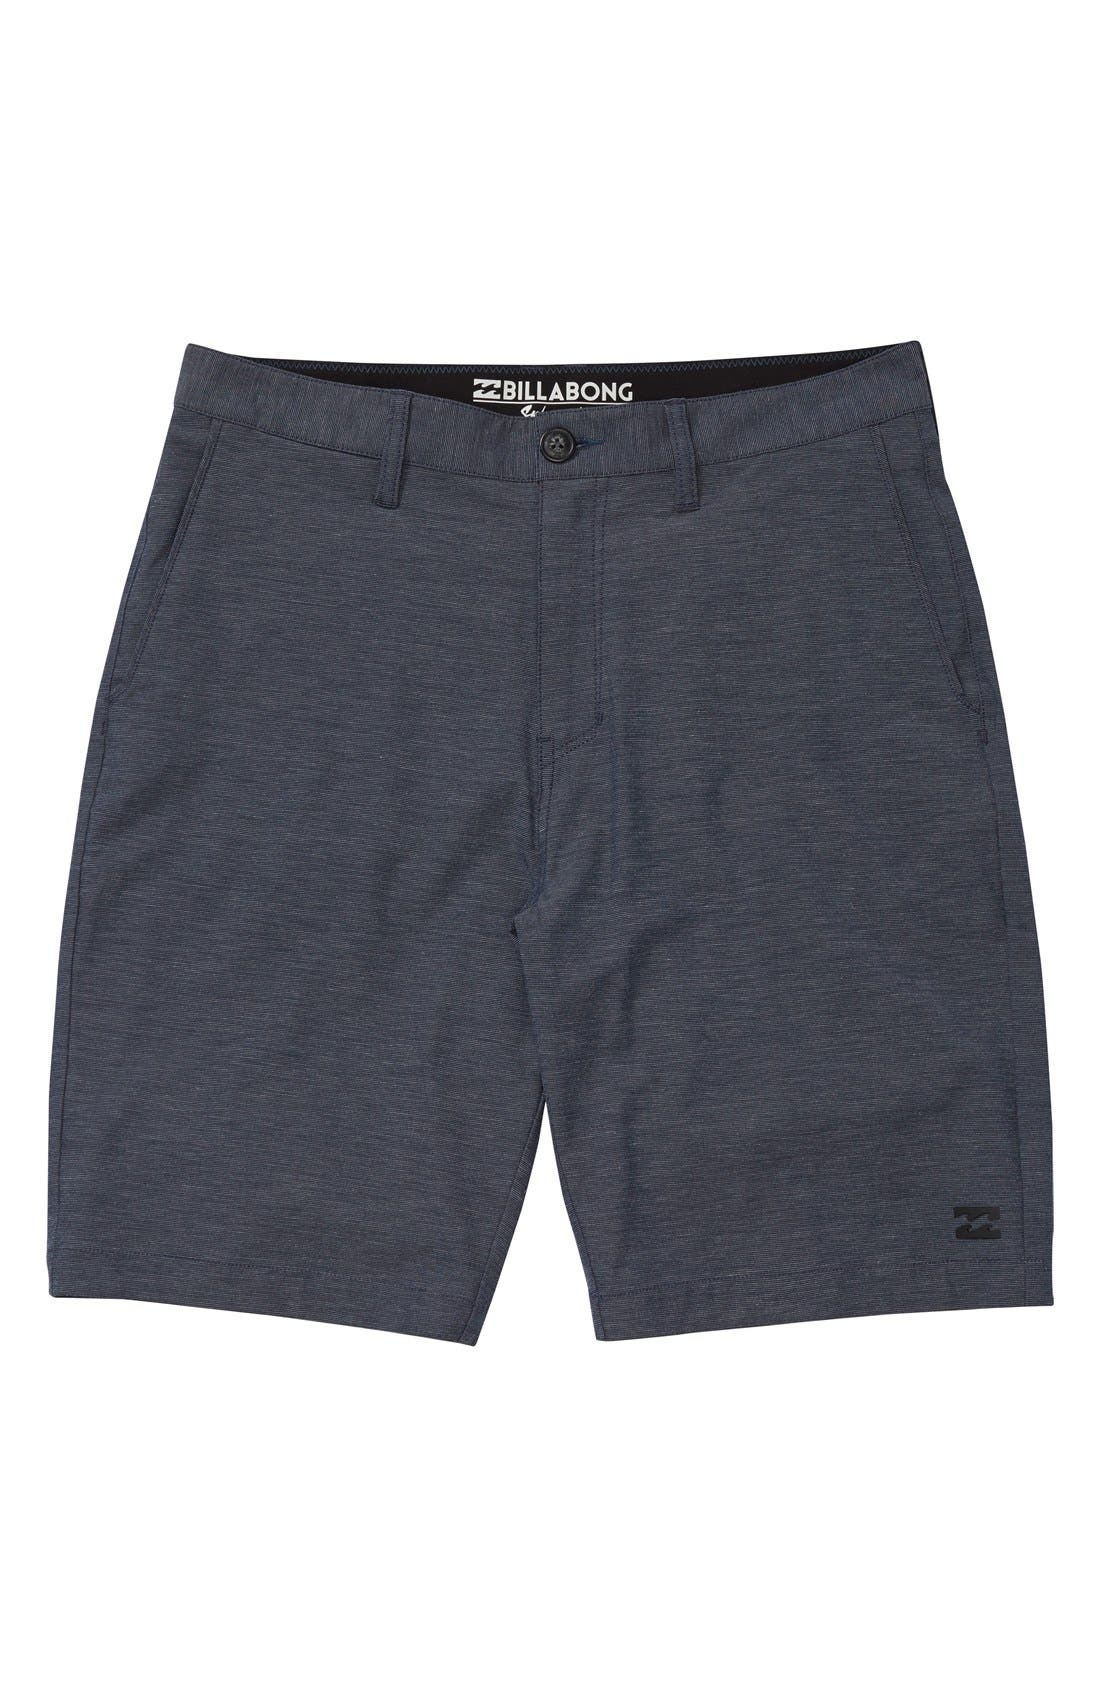 Crossfire X Submersible Hybrid Shorts,                         Main,                         color,